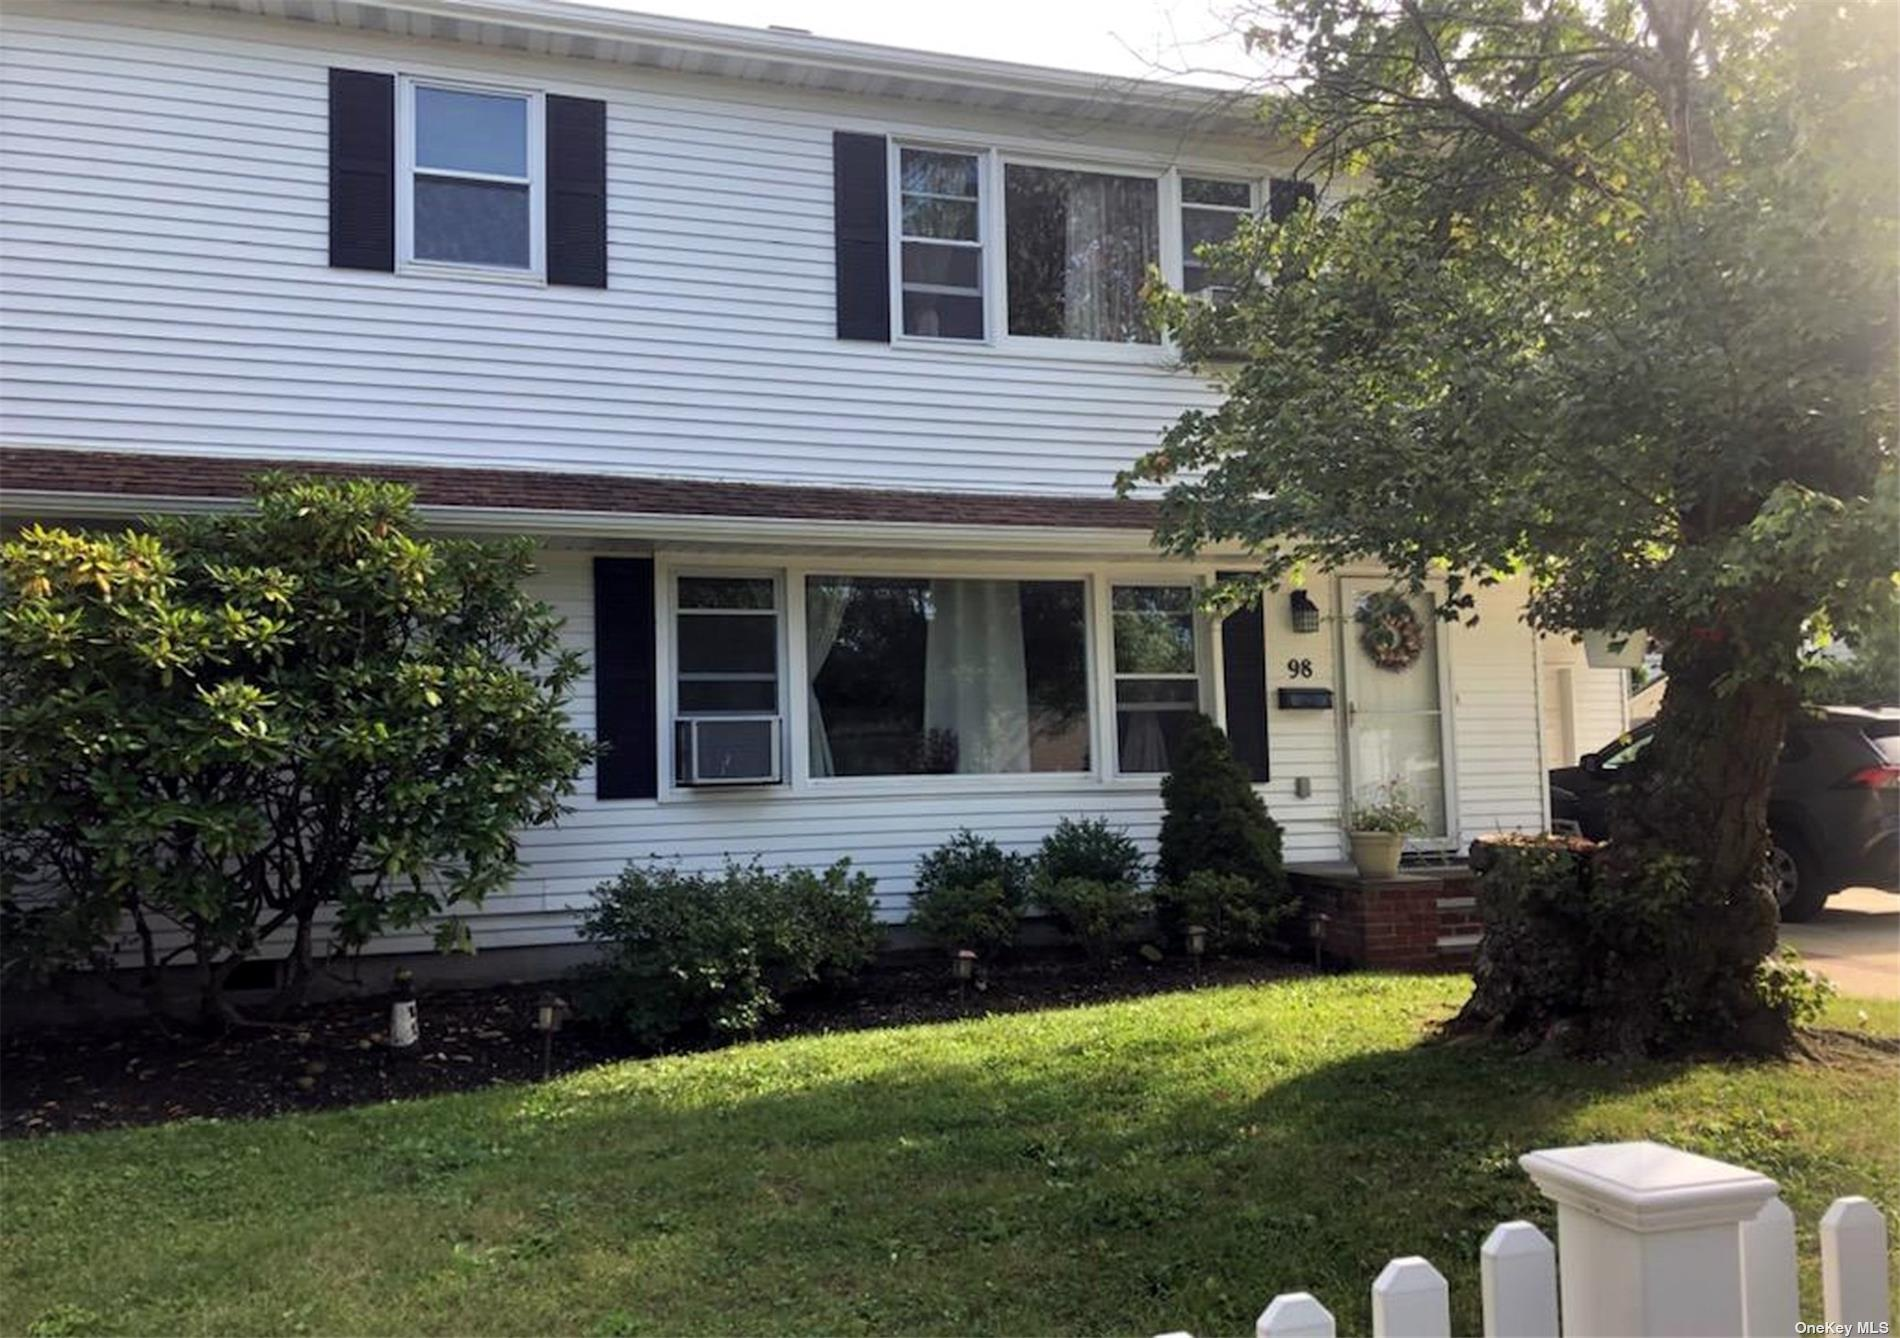 Nestled in the charming community of South Amityville, you'll discover this beautifully renovated 5 Bedroom, 3 bath waterfront Colonial with a newer bulkhead , just a stone's throw from the open bay!  Renovated in 2015, features include a roomy, remodeled EIK with granite, contemp cabinets and Stainless applis, a luxurious 2nd floor Prime BR suite with vaulted ceiling, WIC and full bath including soaker tub, separate shower, dual sinks, and sliders to a personal 2nd story deck offering waterviews.  This amply sized home includes 4 addl bedrms, a sleeping loft, 2 addl renov baths, a 1st floor Lndry rm, a 2nd floor Family rm and a flexible layout for accommodating extend family. Includes pvt garage and drive, space to keep your boat and access to Private Amity Beach! Poss m/d proper permits required.